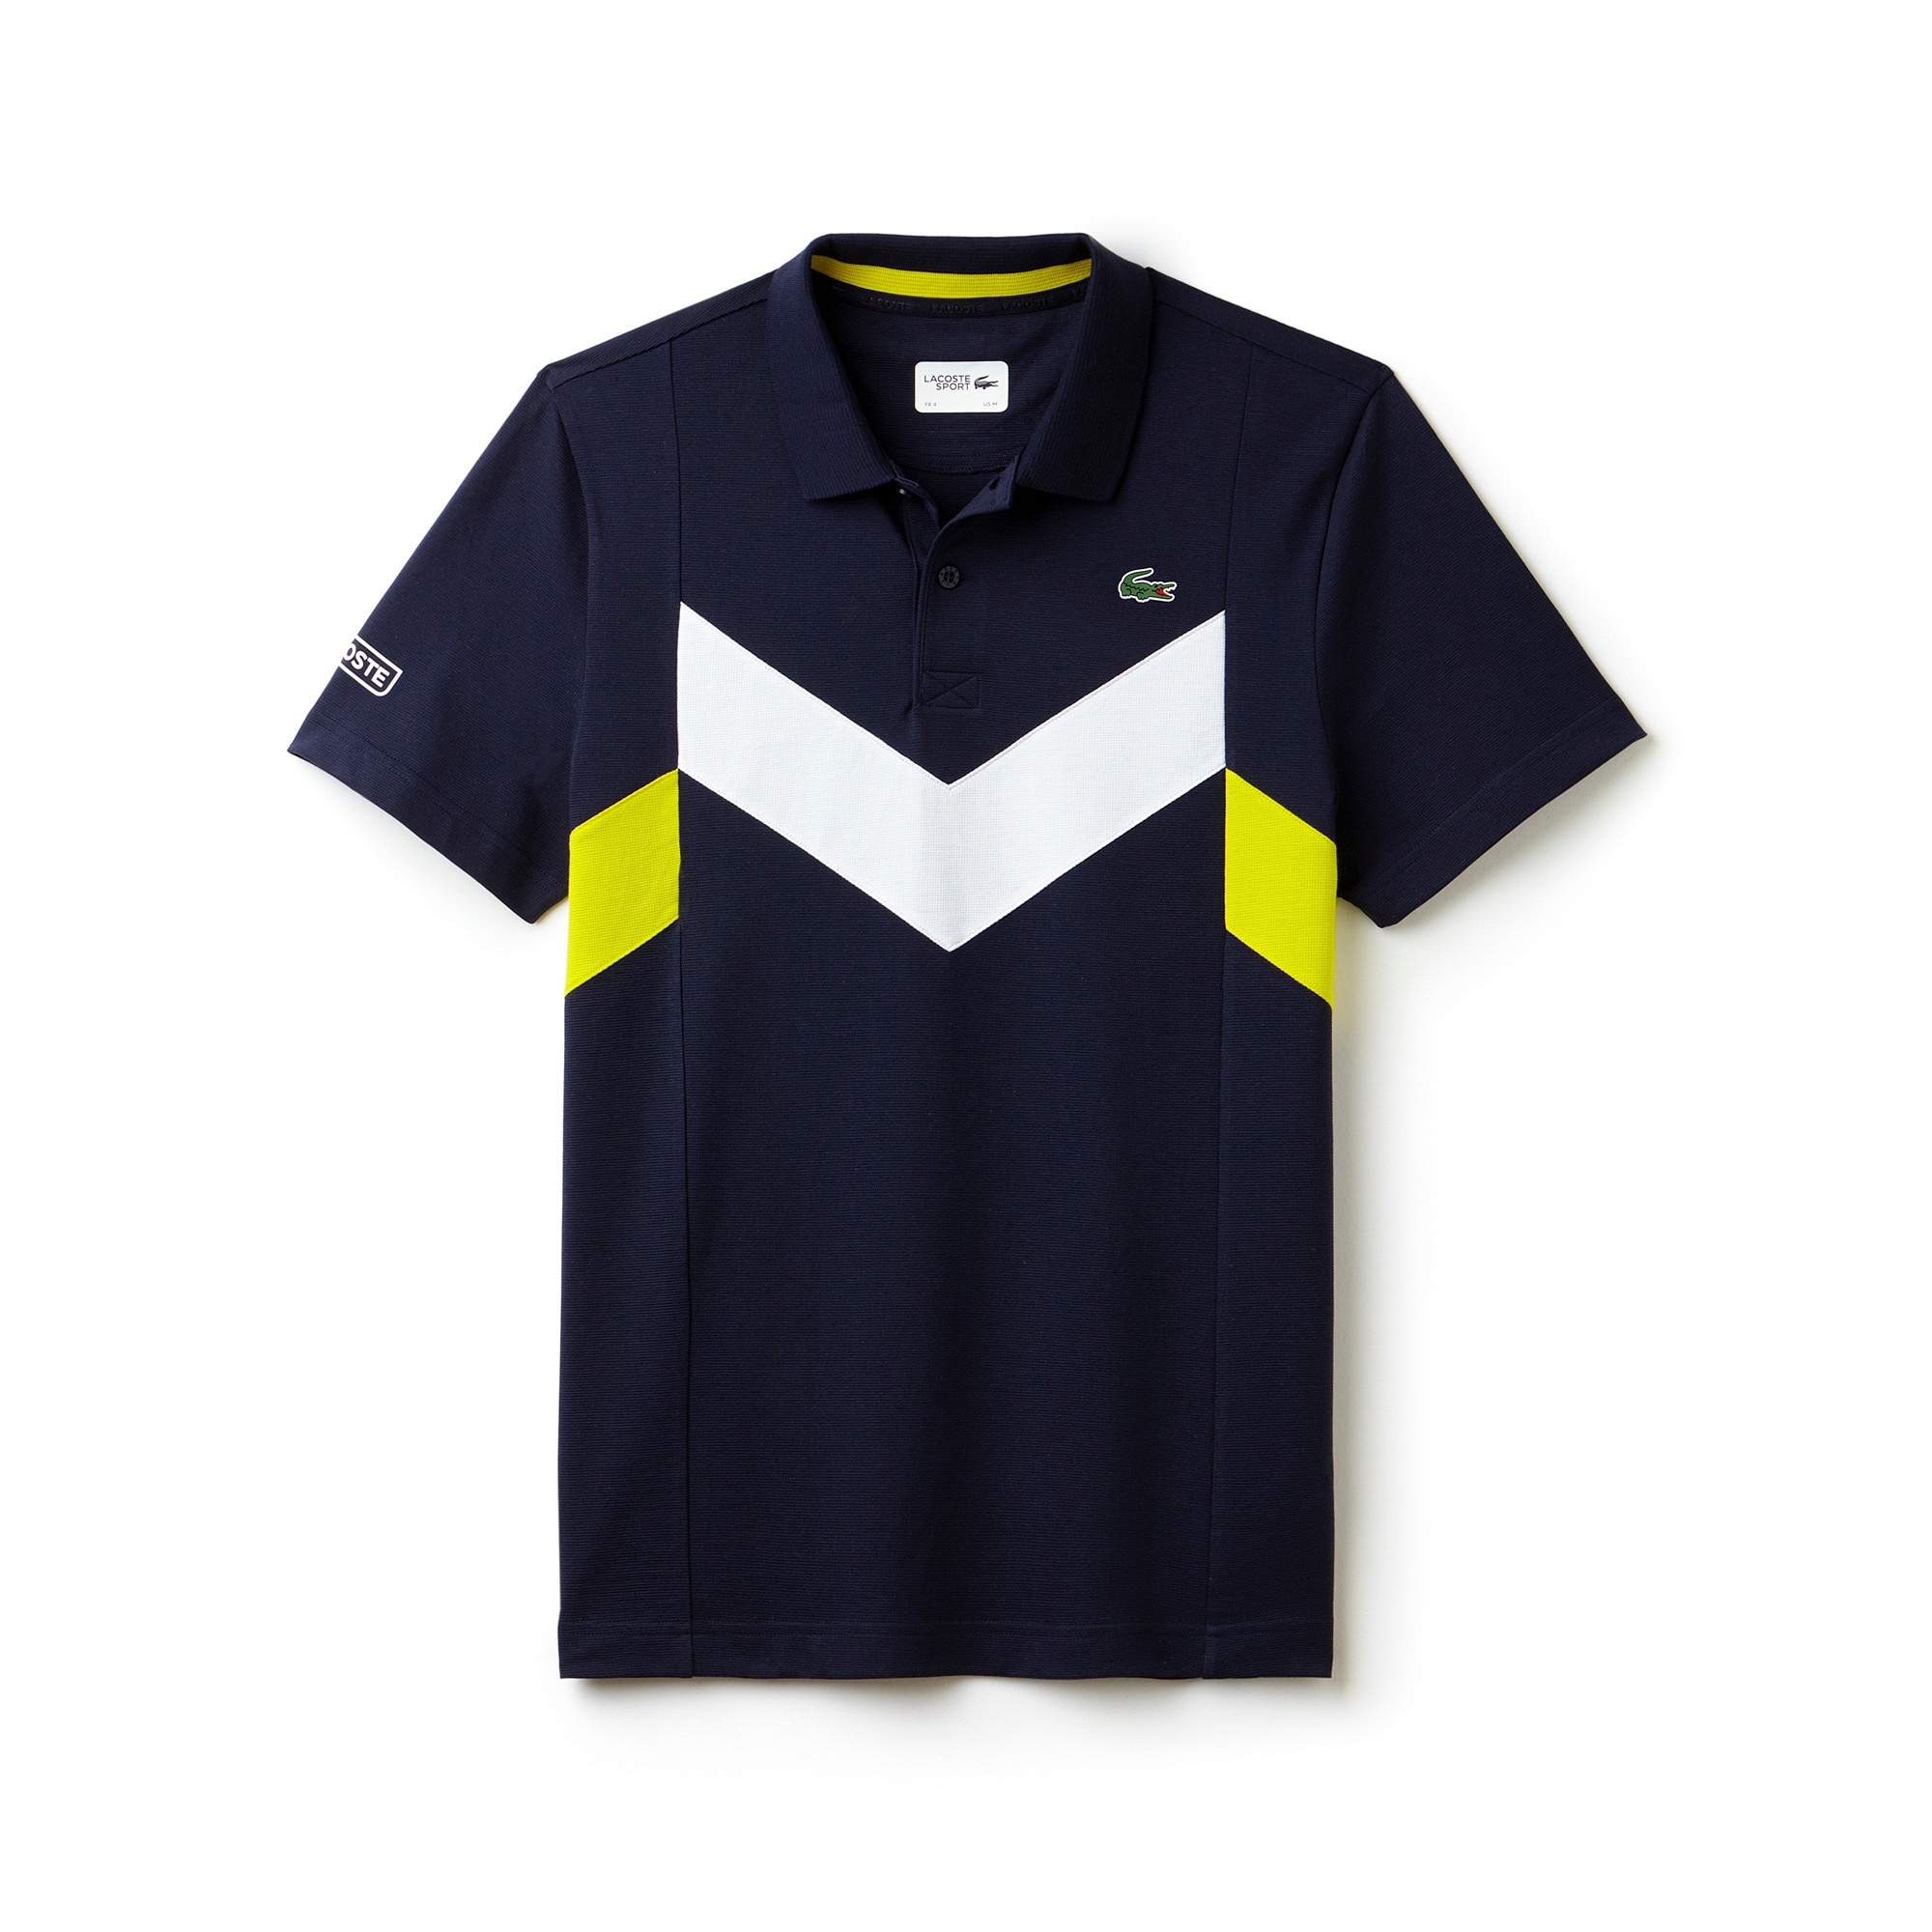 Men's  SPORT Tennis Ultra-Lightweight Colorblock Knit Polo